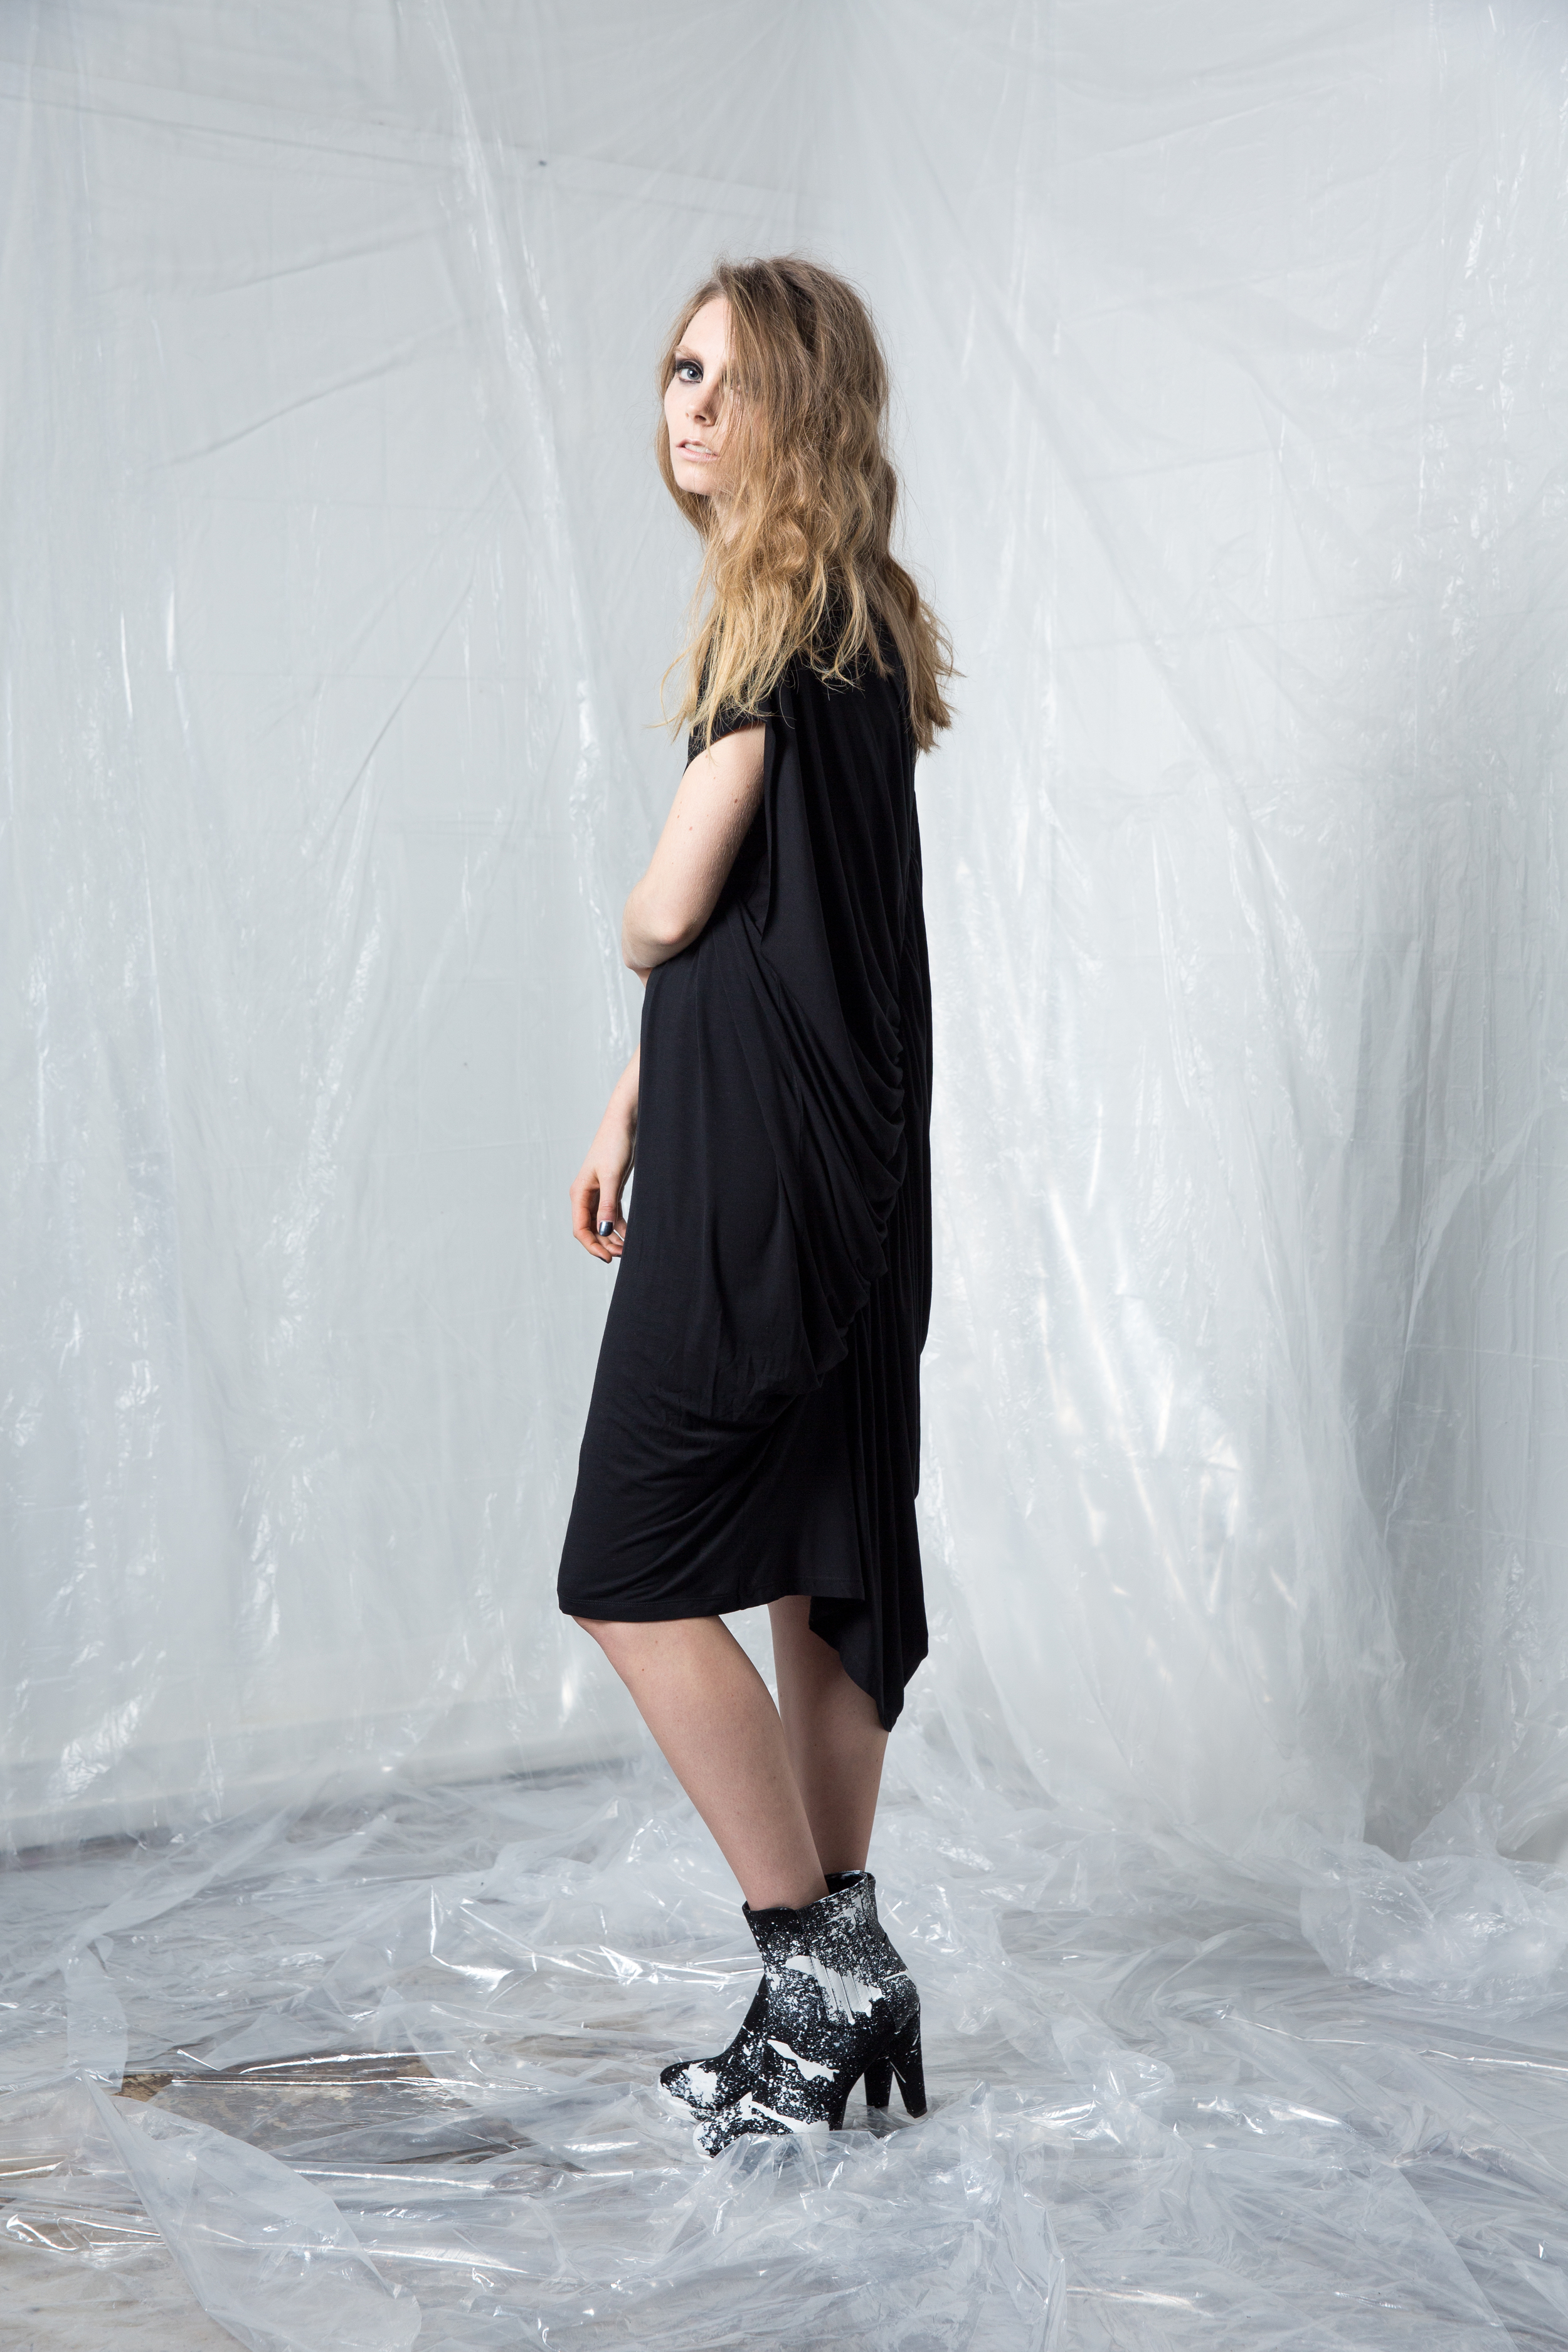 Maaike Winter 16 - 11 SEPT 2015-852.jpg